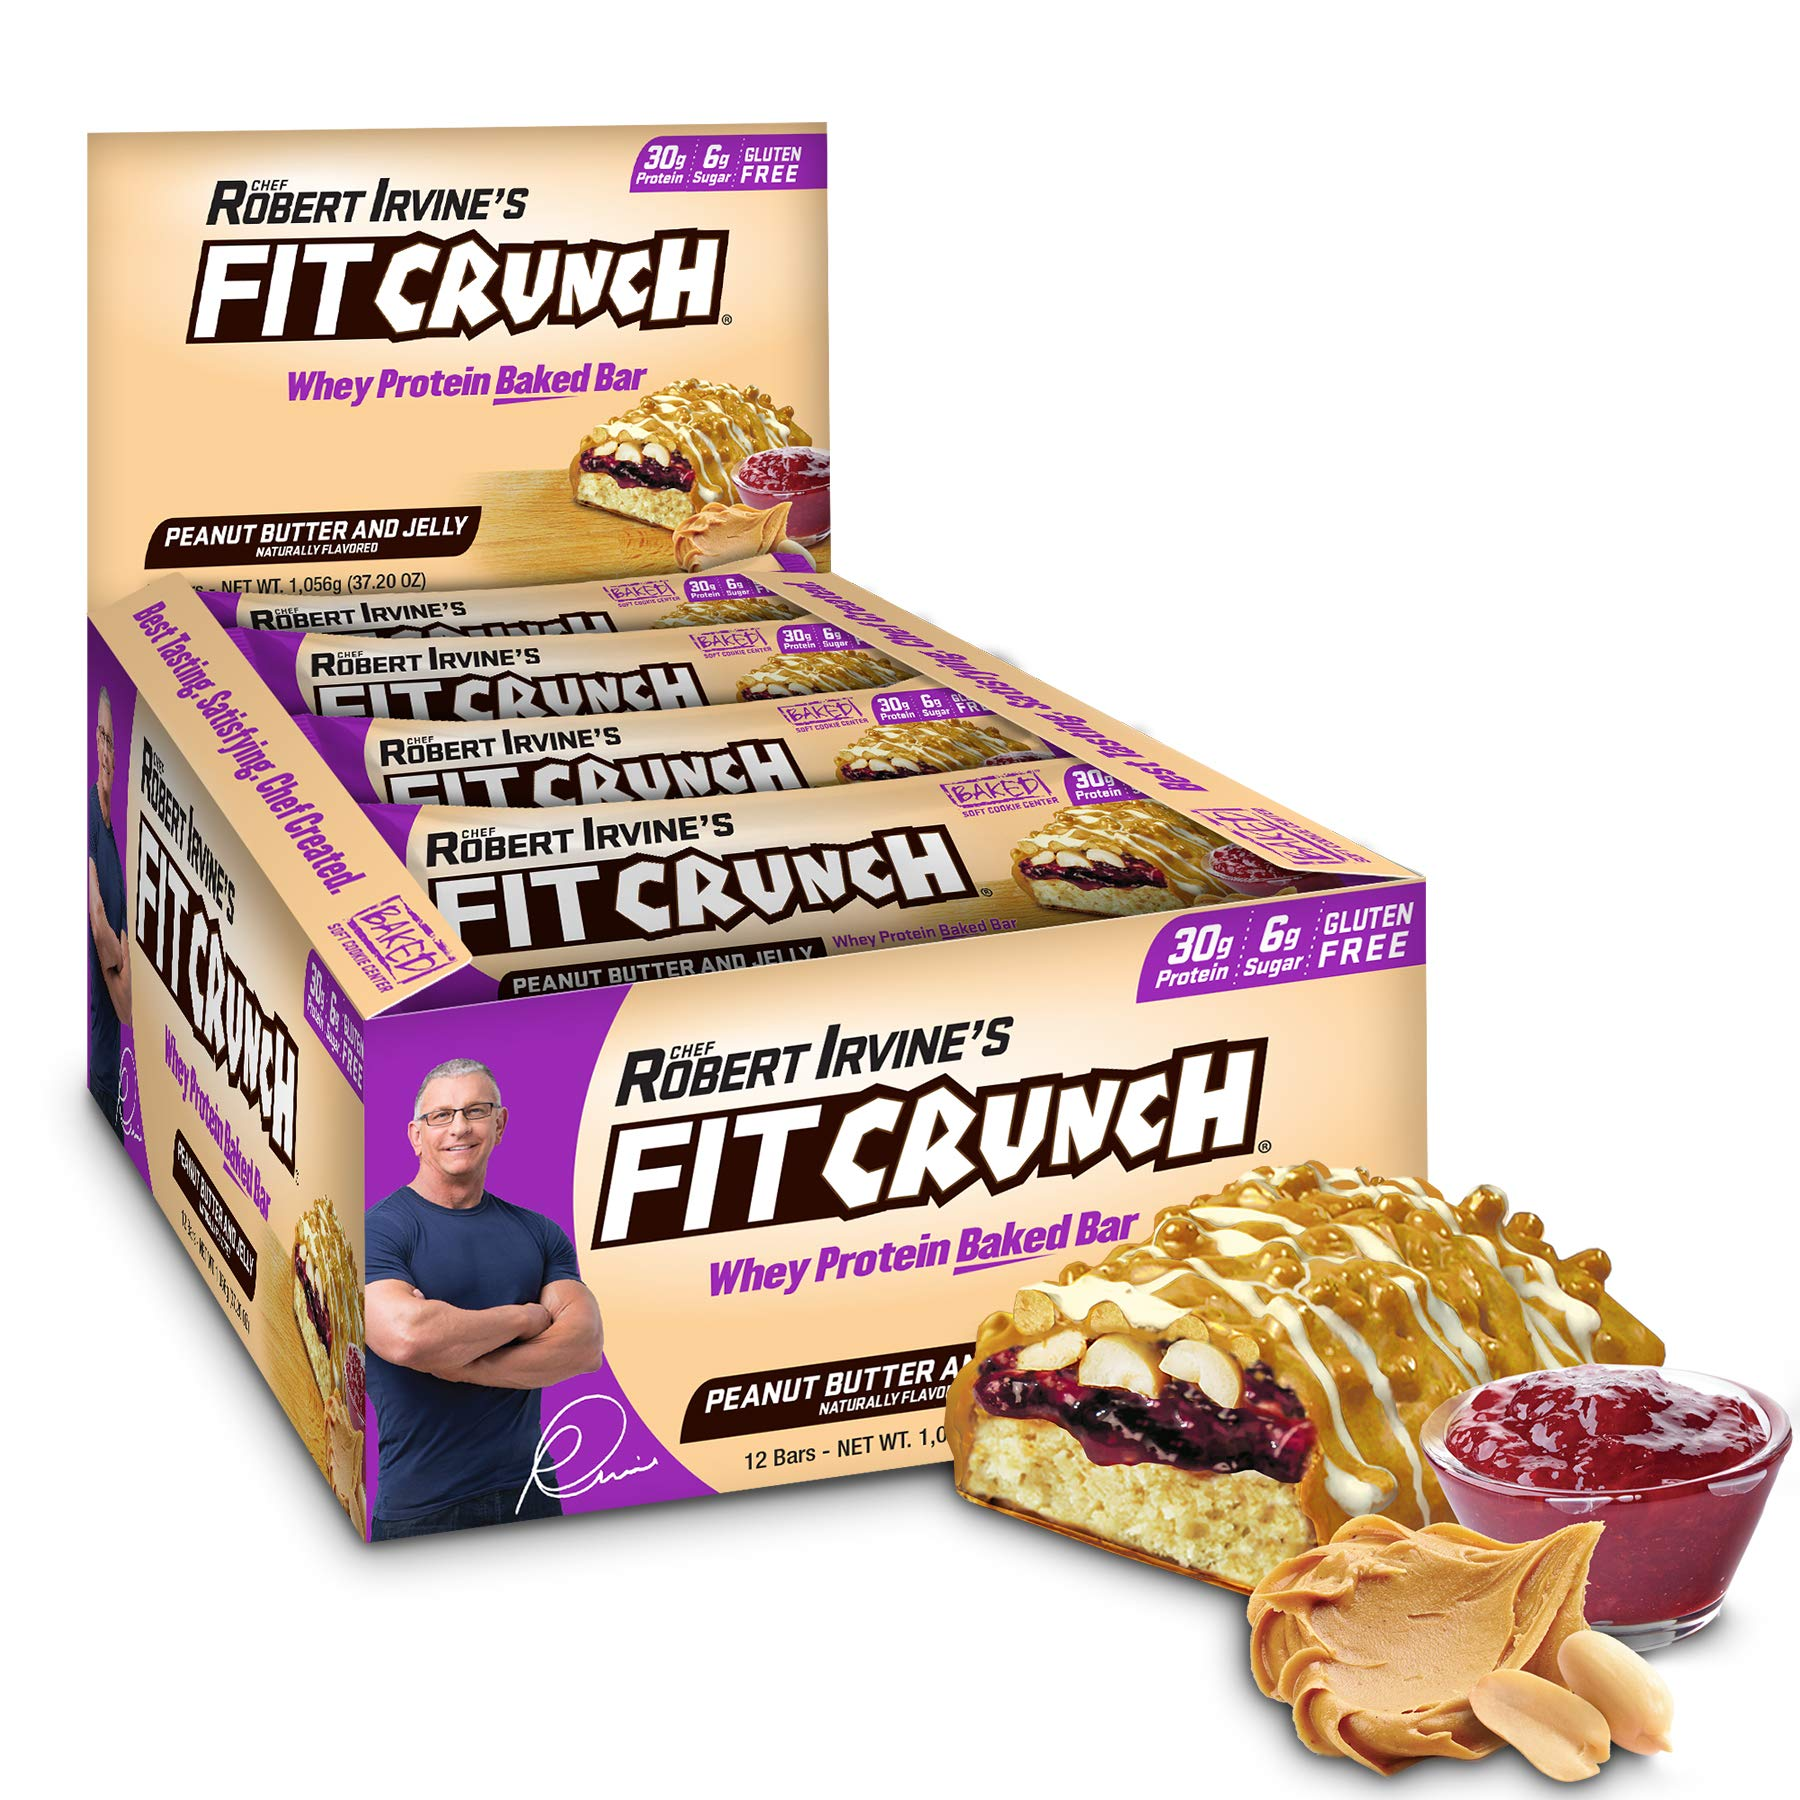 FITCRUNCH Protein Bars | Designed by Robert Irvine | World's Only 6-Layer Baked Bar | Just 6g of Sugar & Soft Cake Core (12 Bars, Peanut Butter & Jelly)